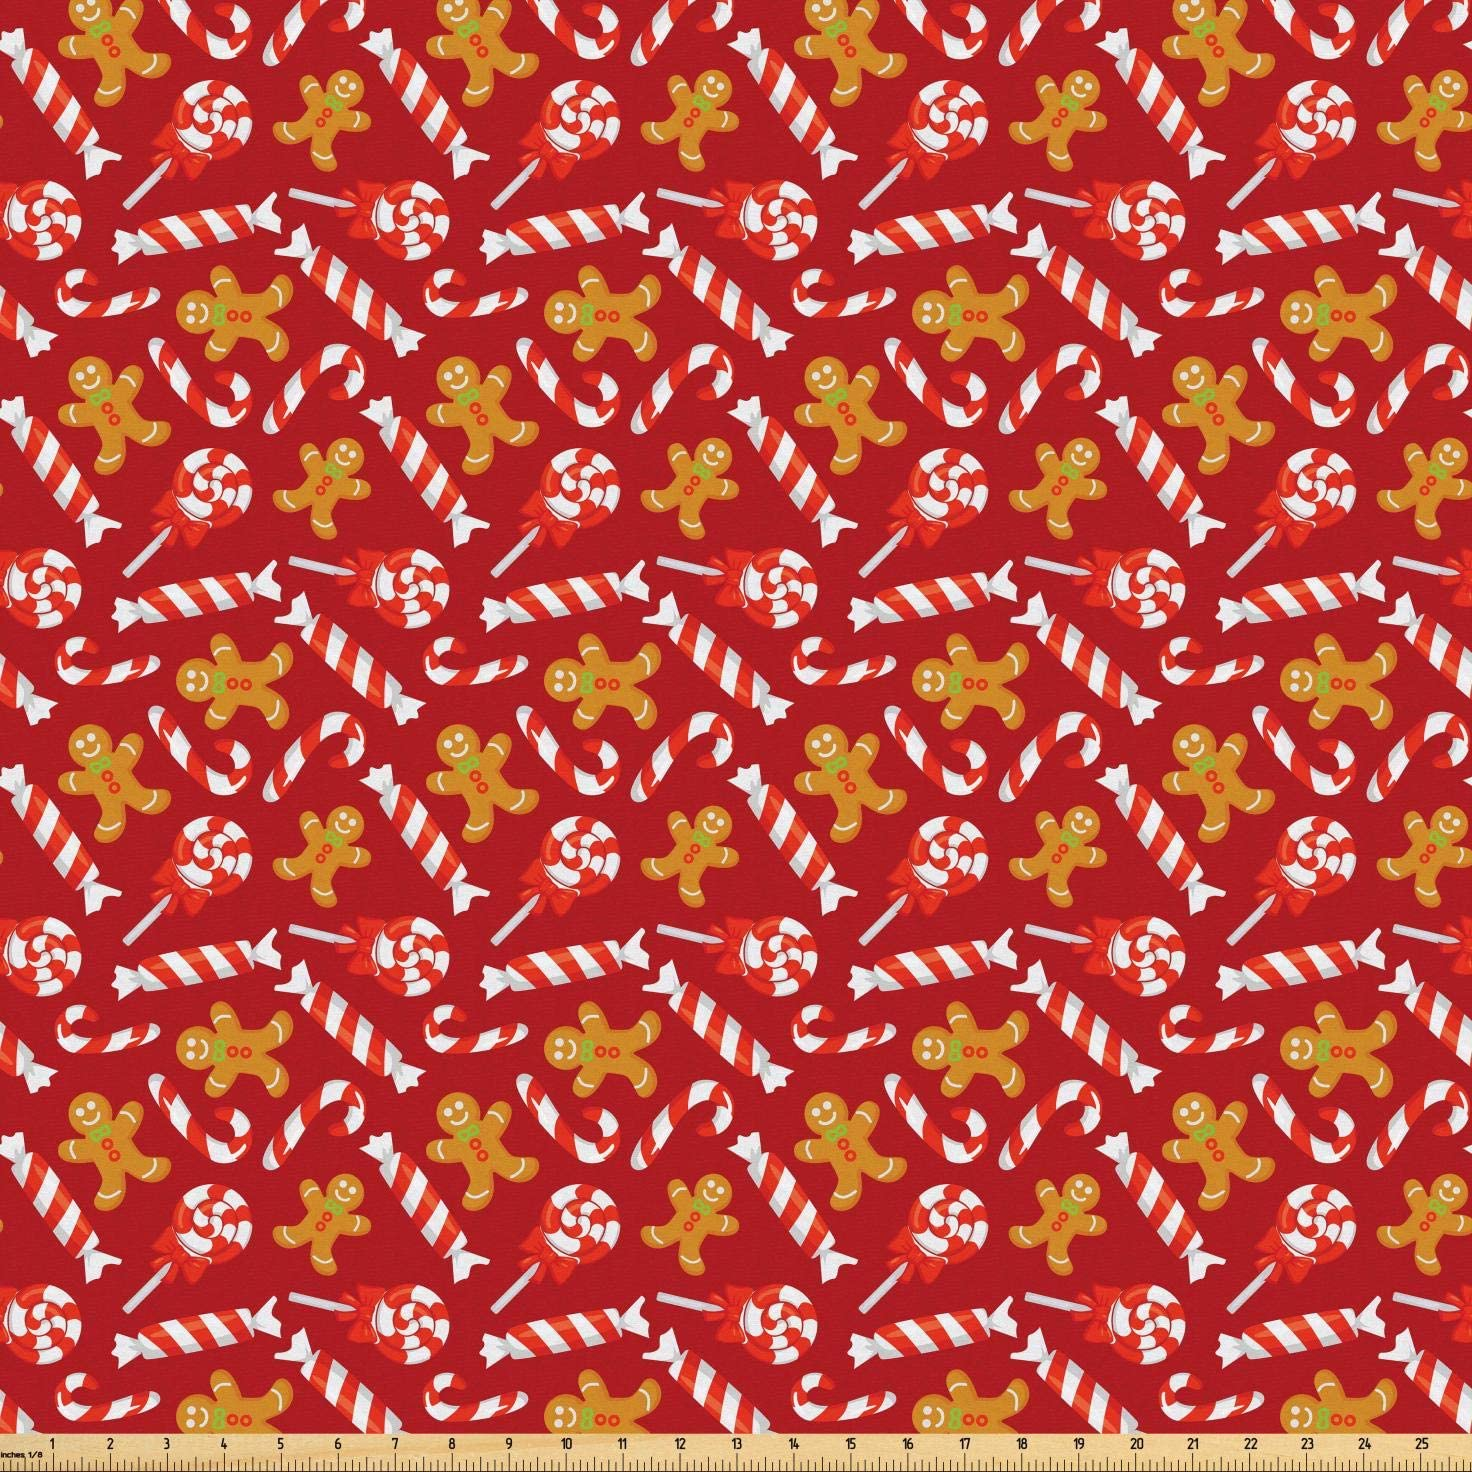 Lunarable Candy Cane Fabric by The Yard, Gingerbread Man and Sweets Traditional Christmas New Year, Microfiber Fabric for Arts and Crafts Textiles & Decor, 10 Yards, Pale Brown Vermilion Red